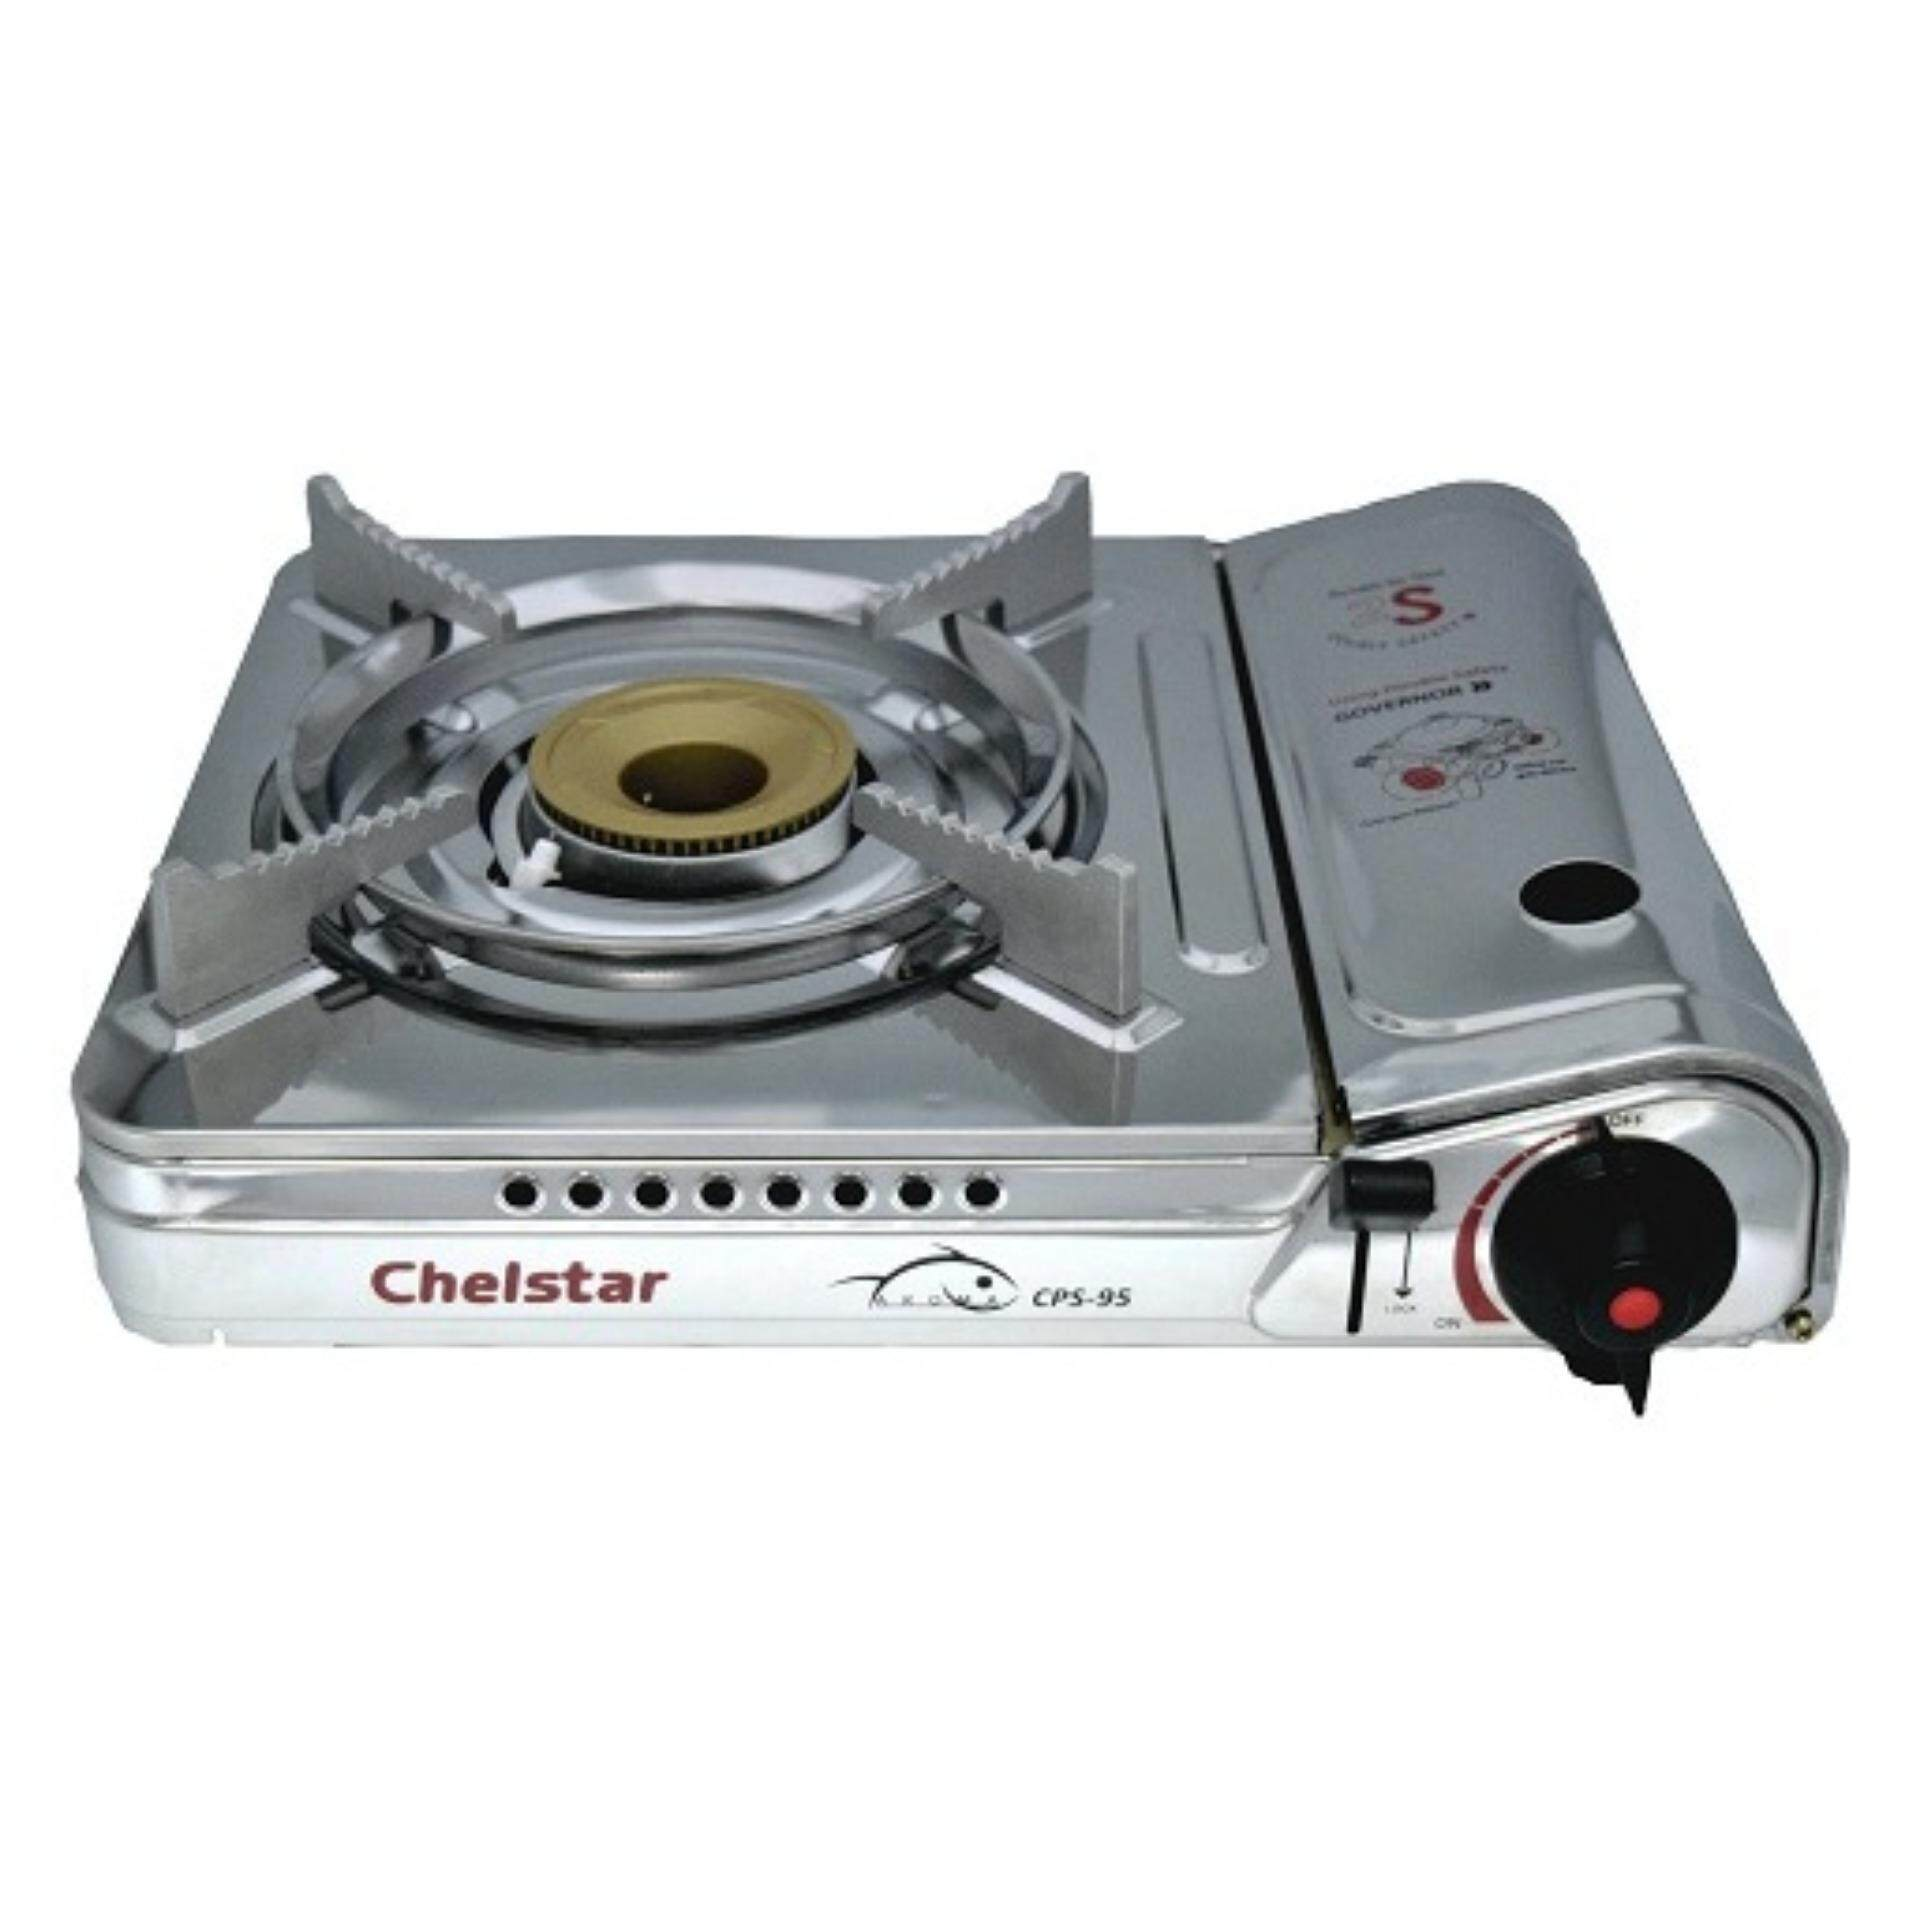 Chelstar Stainless Steel Portable Champing Gas Cooker Stove Cpg 95